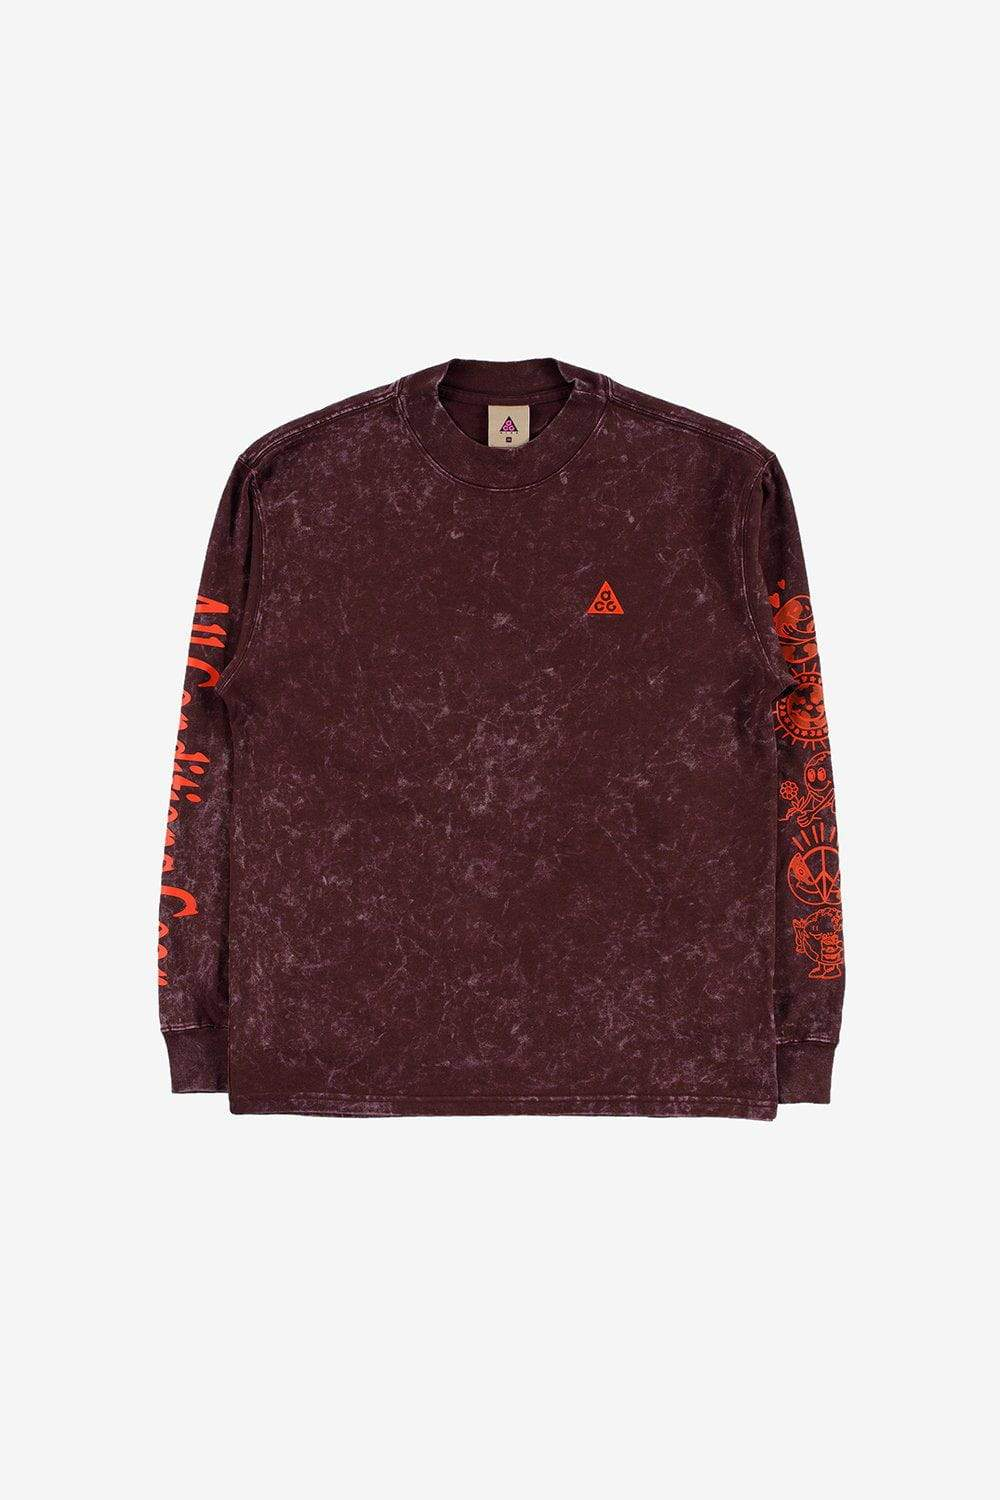 Nike Apparel Nike ACG Earth Long Sleeve Tee